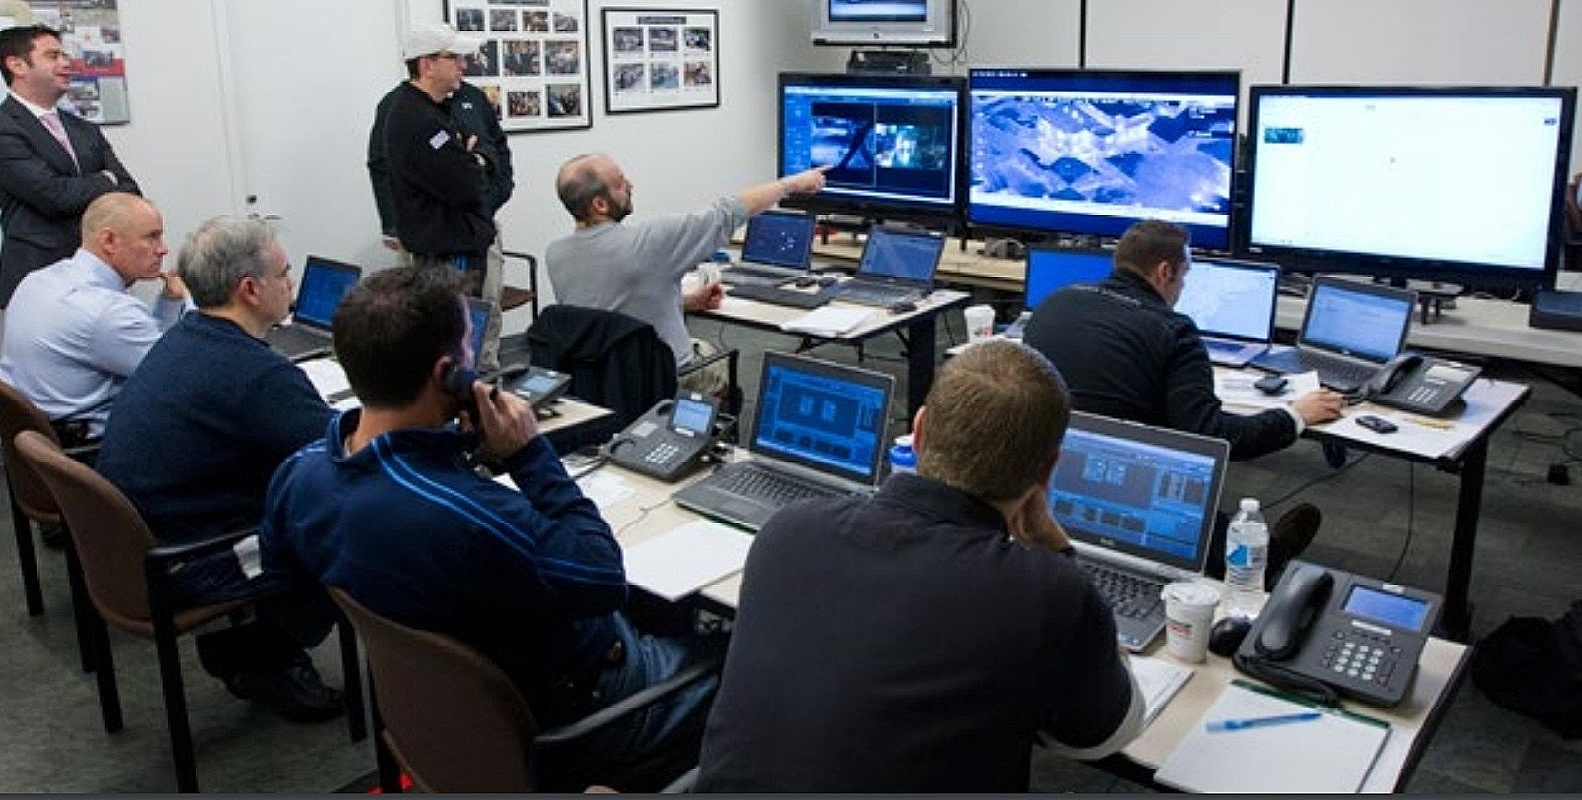 cyber threat image of computer security room for business